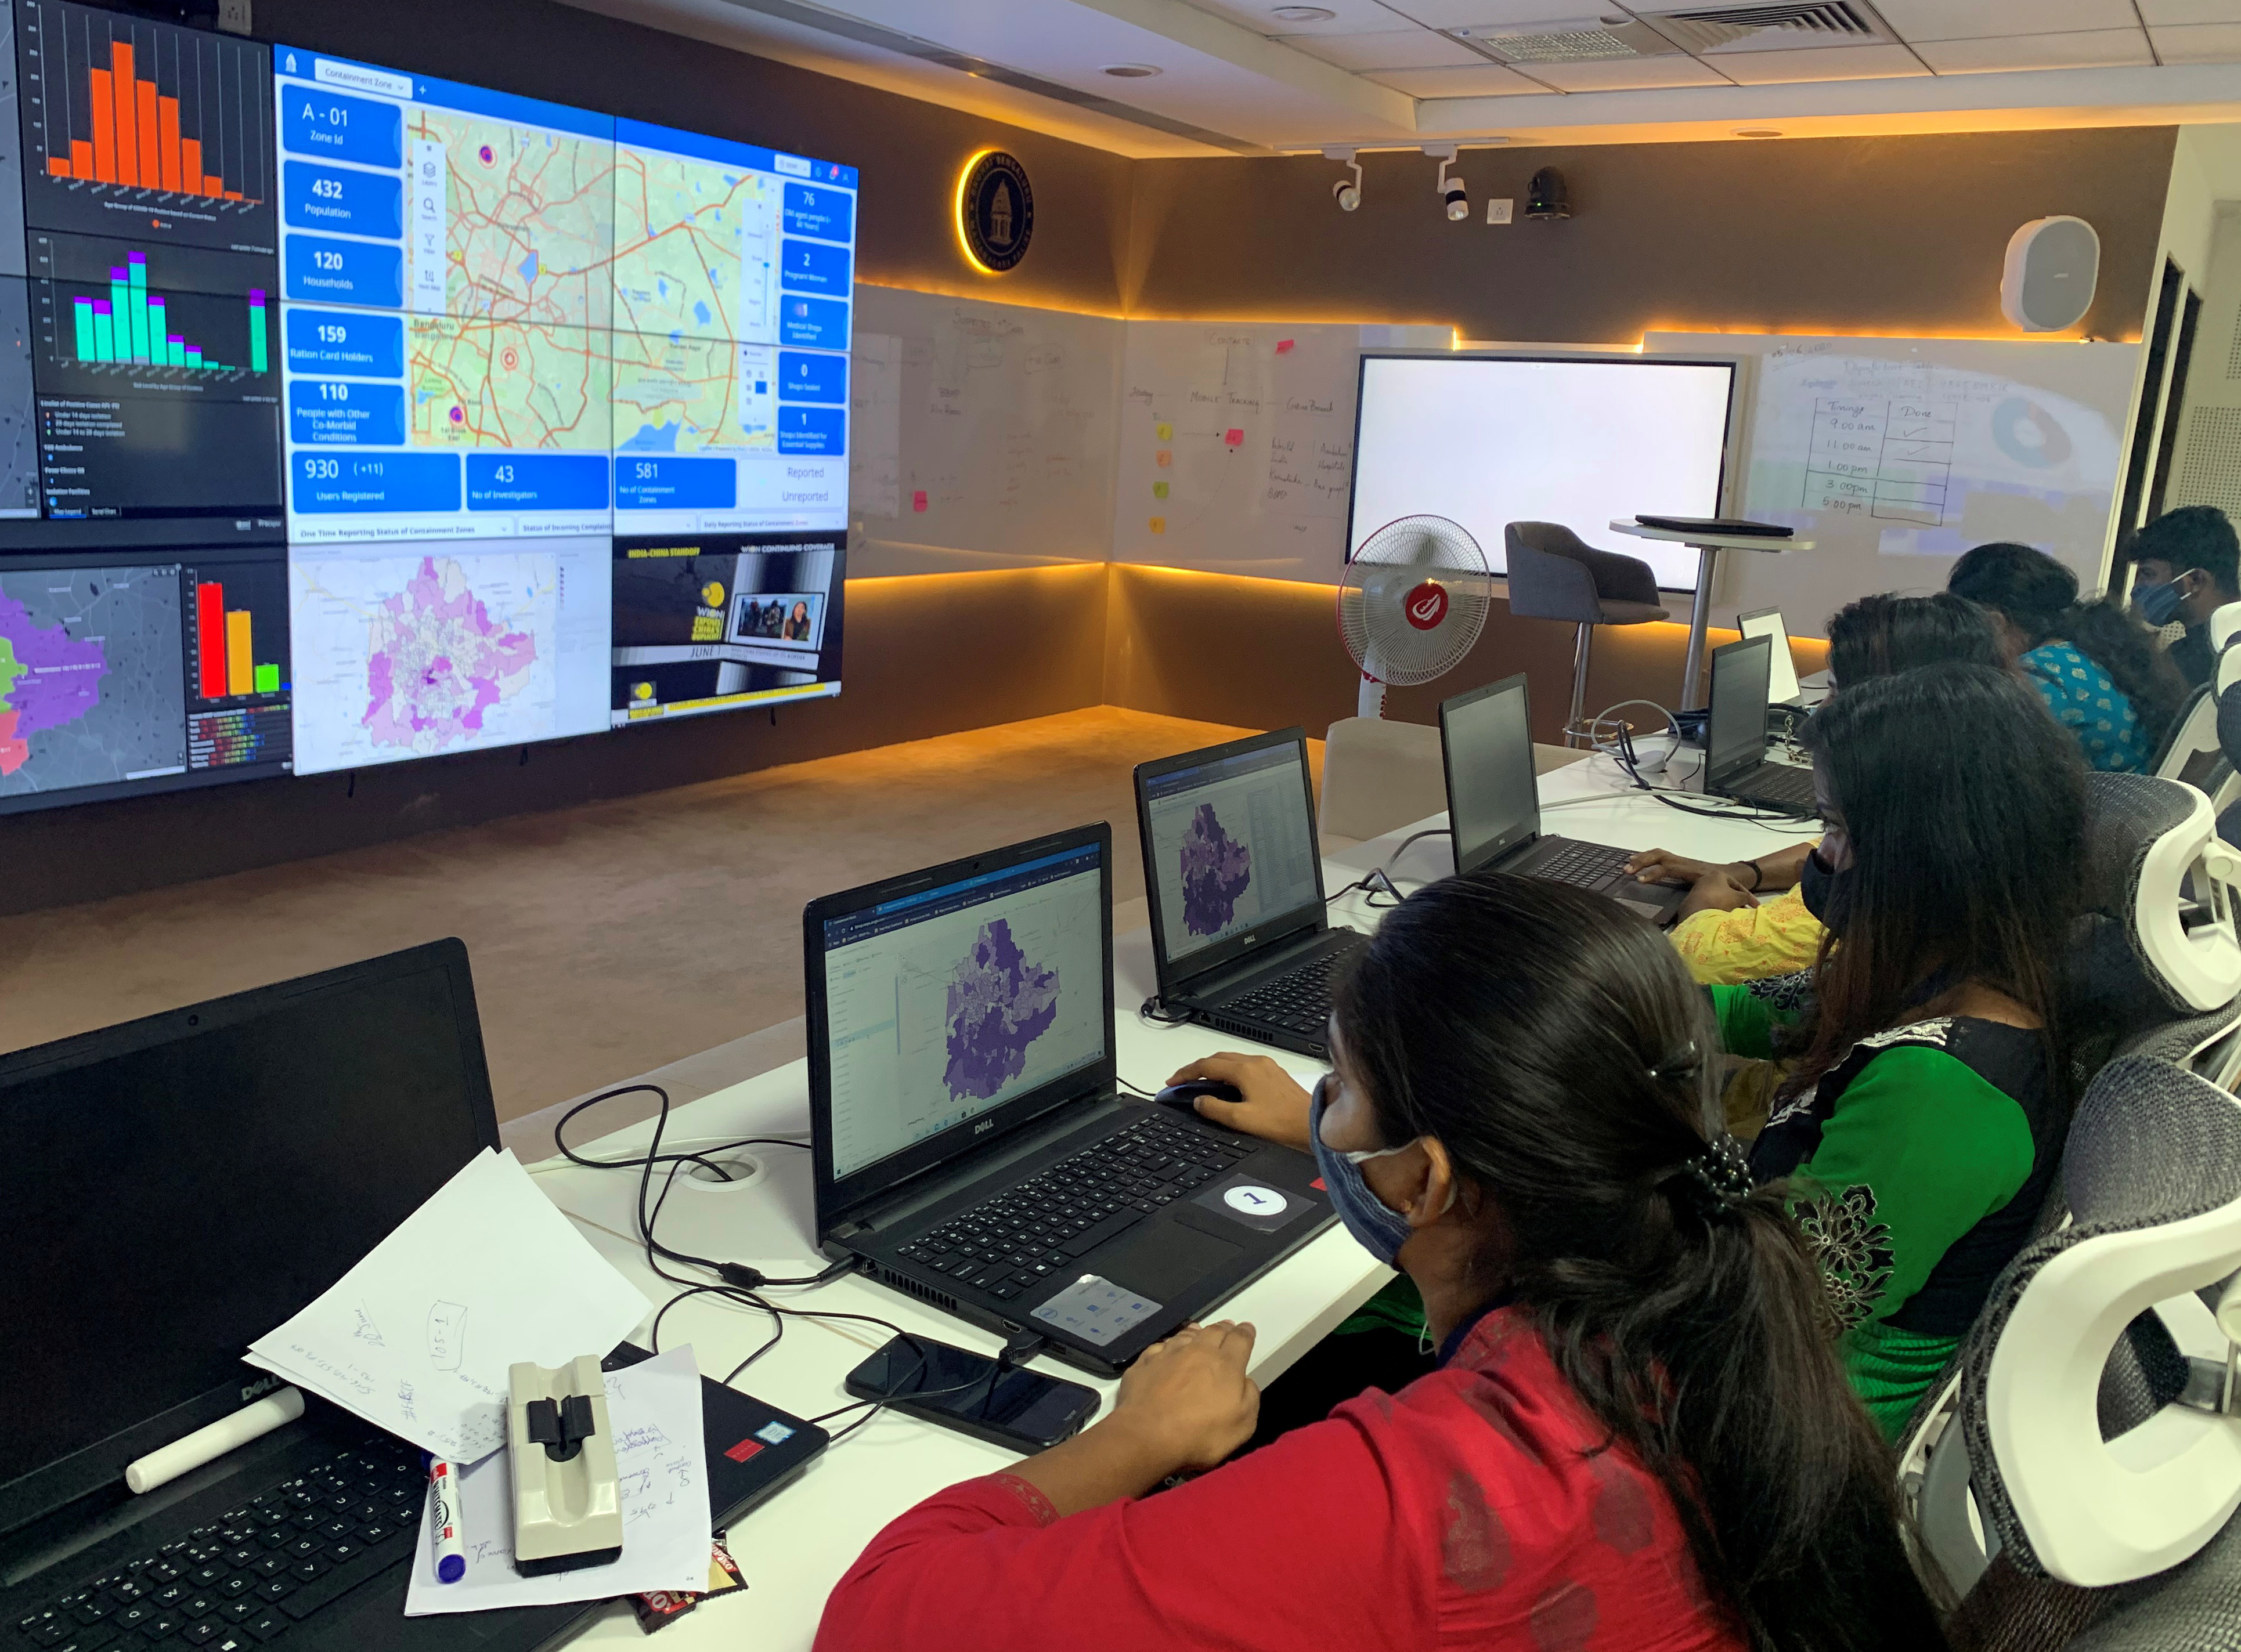 """Software professionals assisting municipal authorities work on their terminals inside a """"war room"""" focused on tracking the spread of the coronavirus disease (COVID-19) at the Bruhat Bengaluru Mahanagara Palike office in Bengaluru, India July 2, 2020. Picture taken July 2, 2020. REUTERS/Nivedita Bhattacharjee - RC2CLI9W531O"""